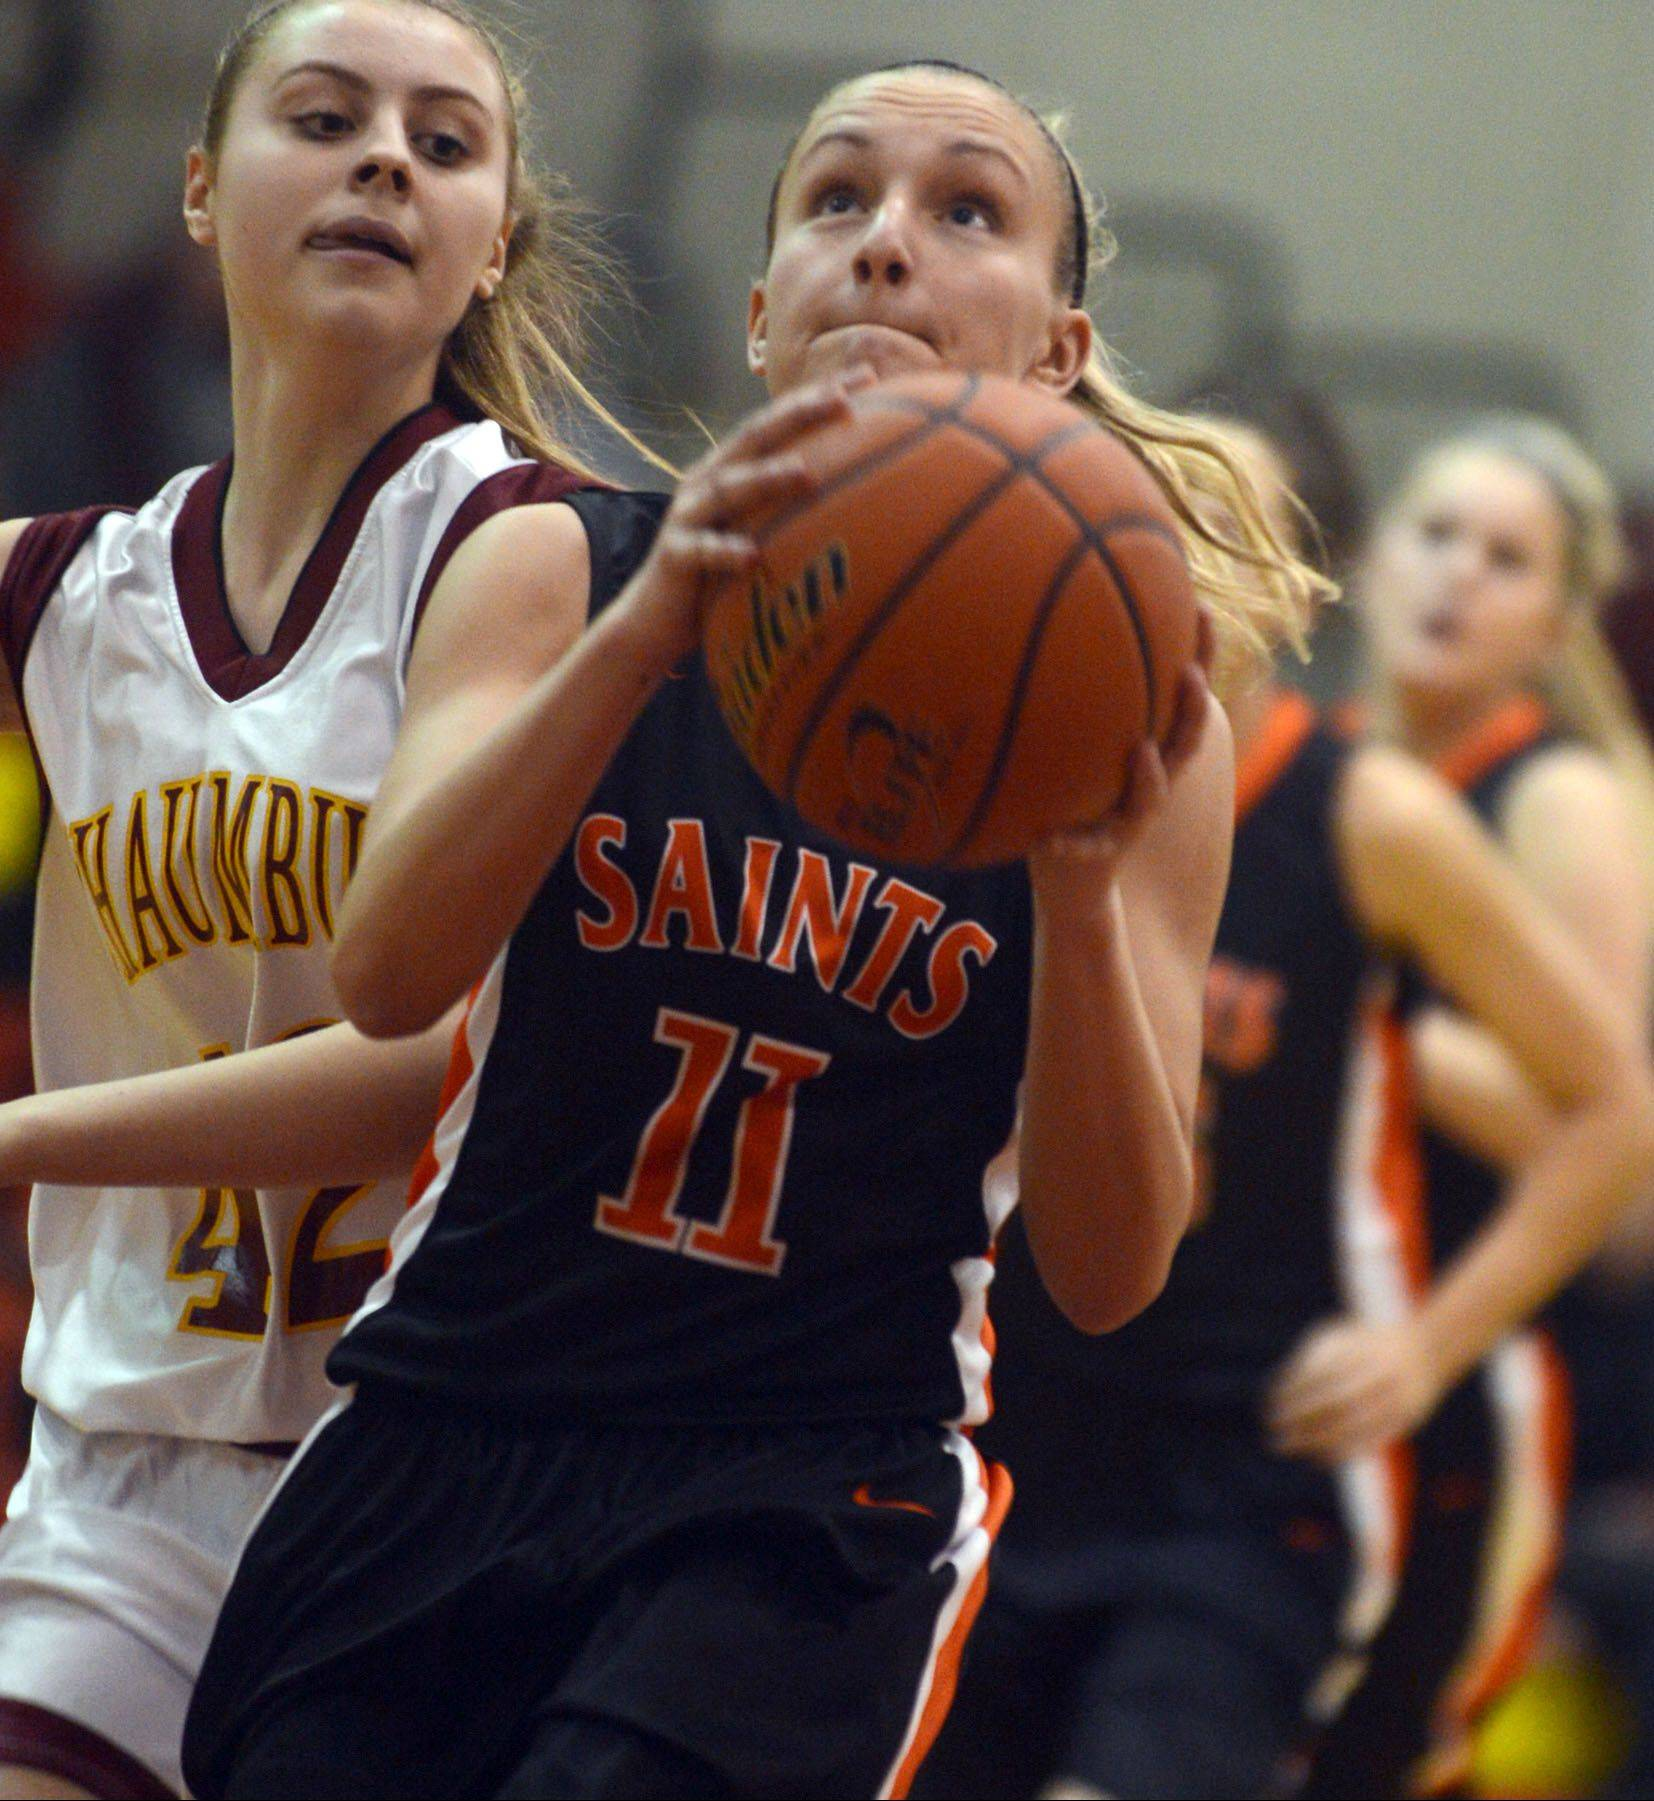 St. Charles East's Katelyn Claussner, right, drives past Schaumburg's Mallory Gerber, left, at Schaumburg Monday.